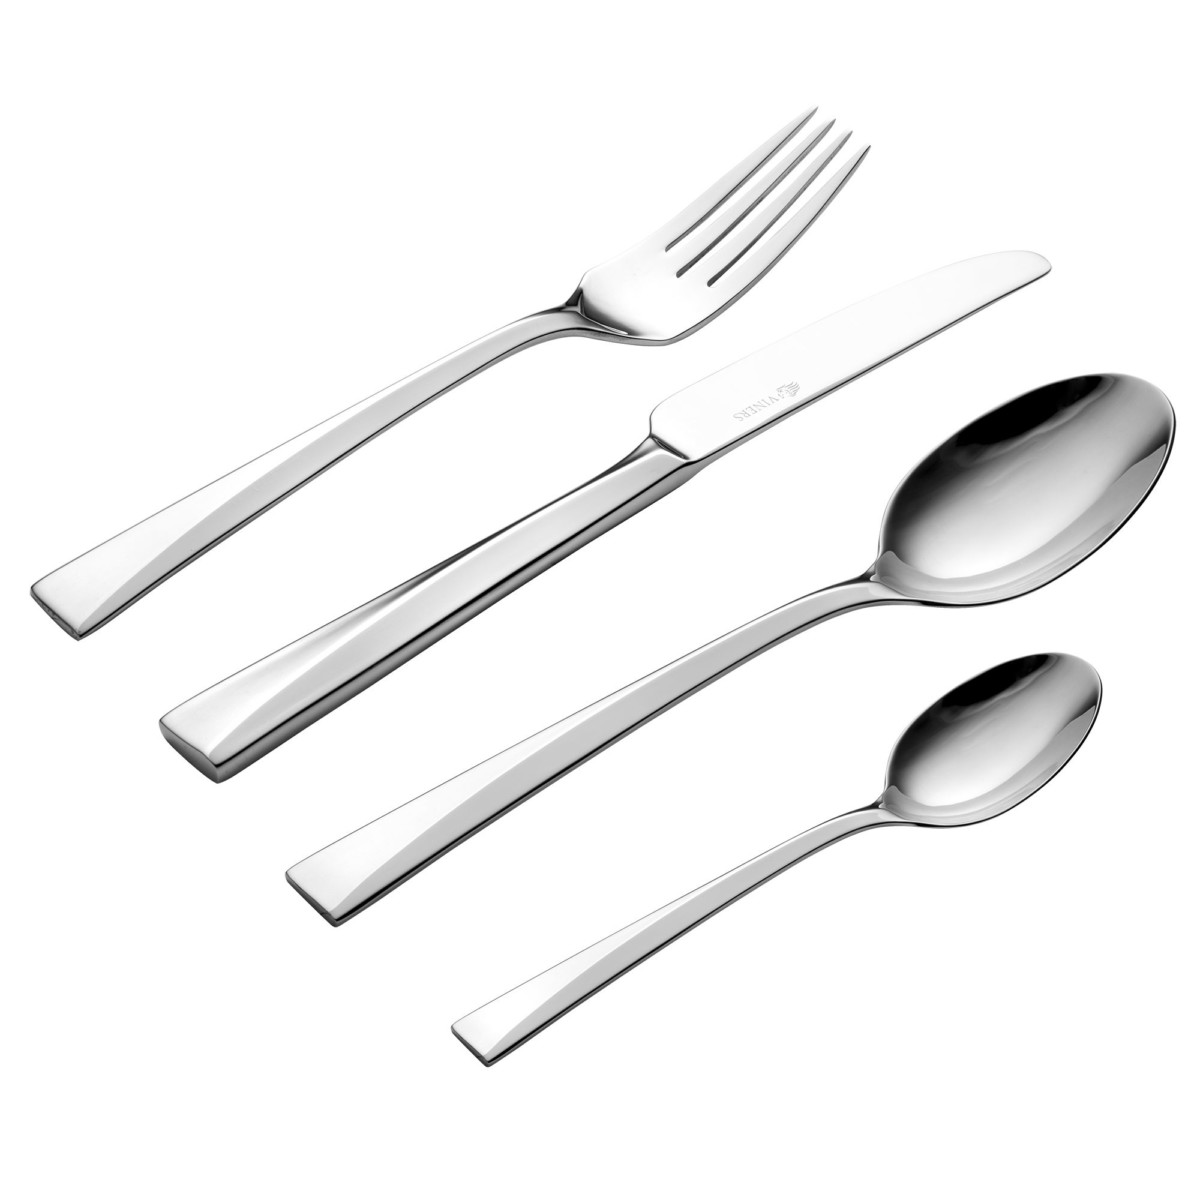 Viners Mayfair Cutlery Set